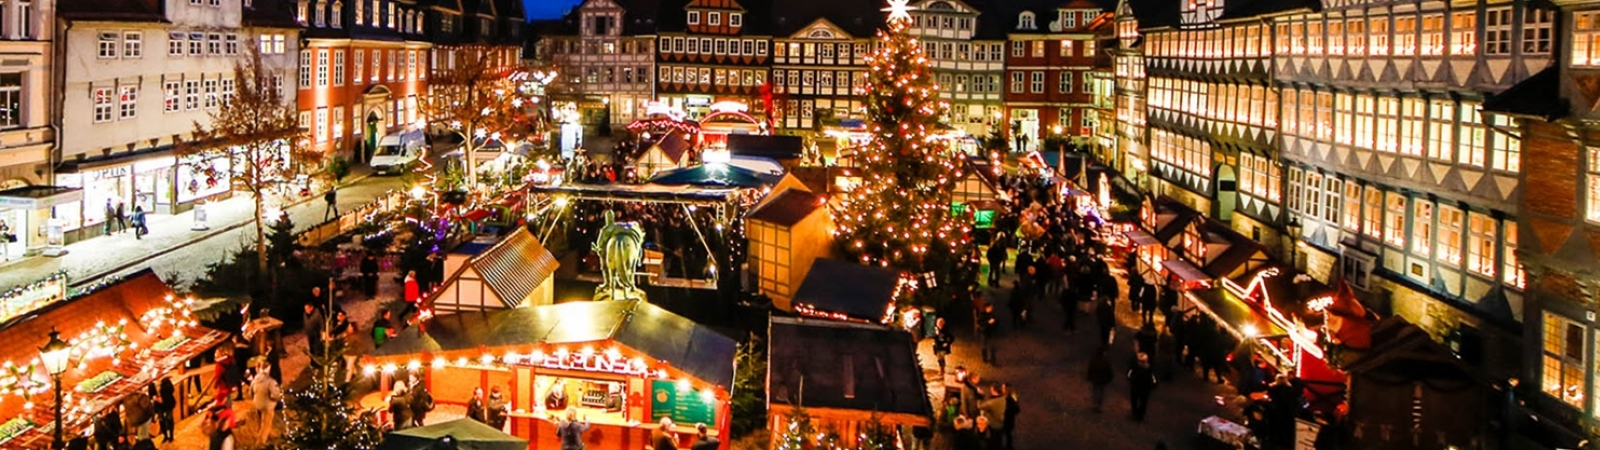 An aerial image of a Christmas Market in Wolfenbüttel